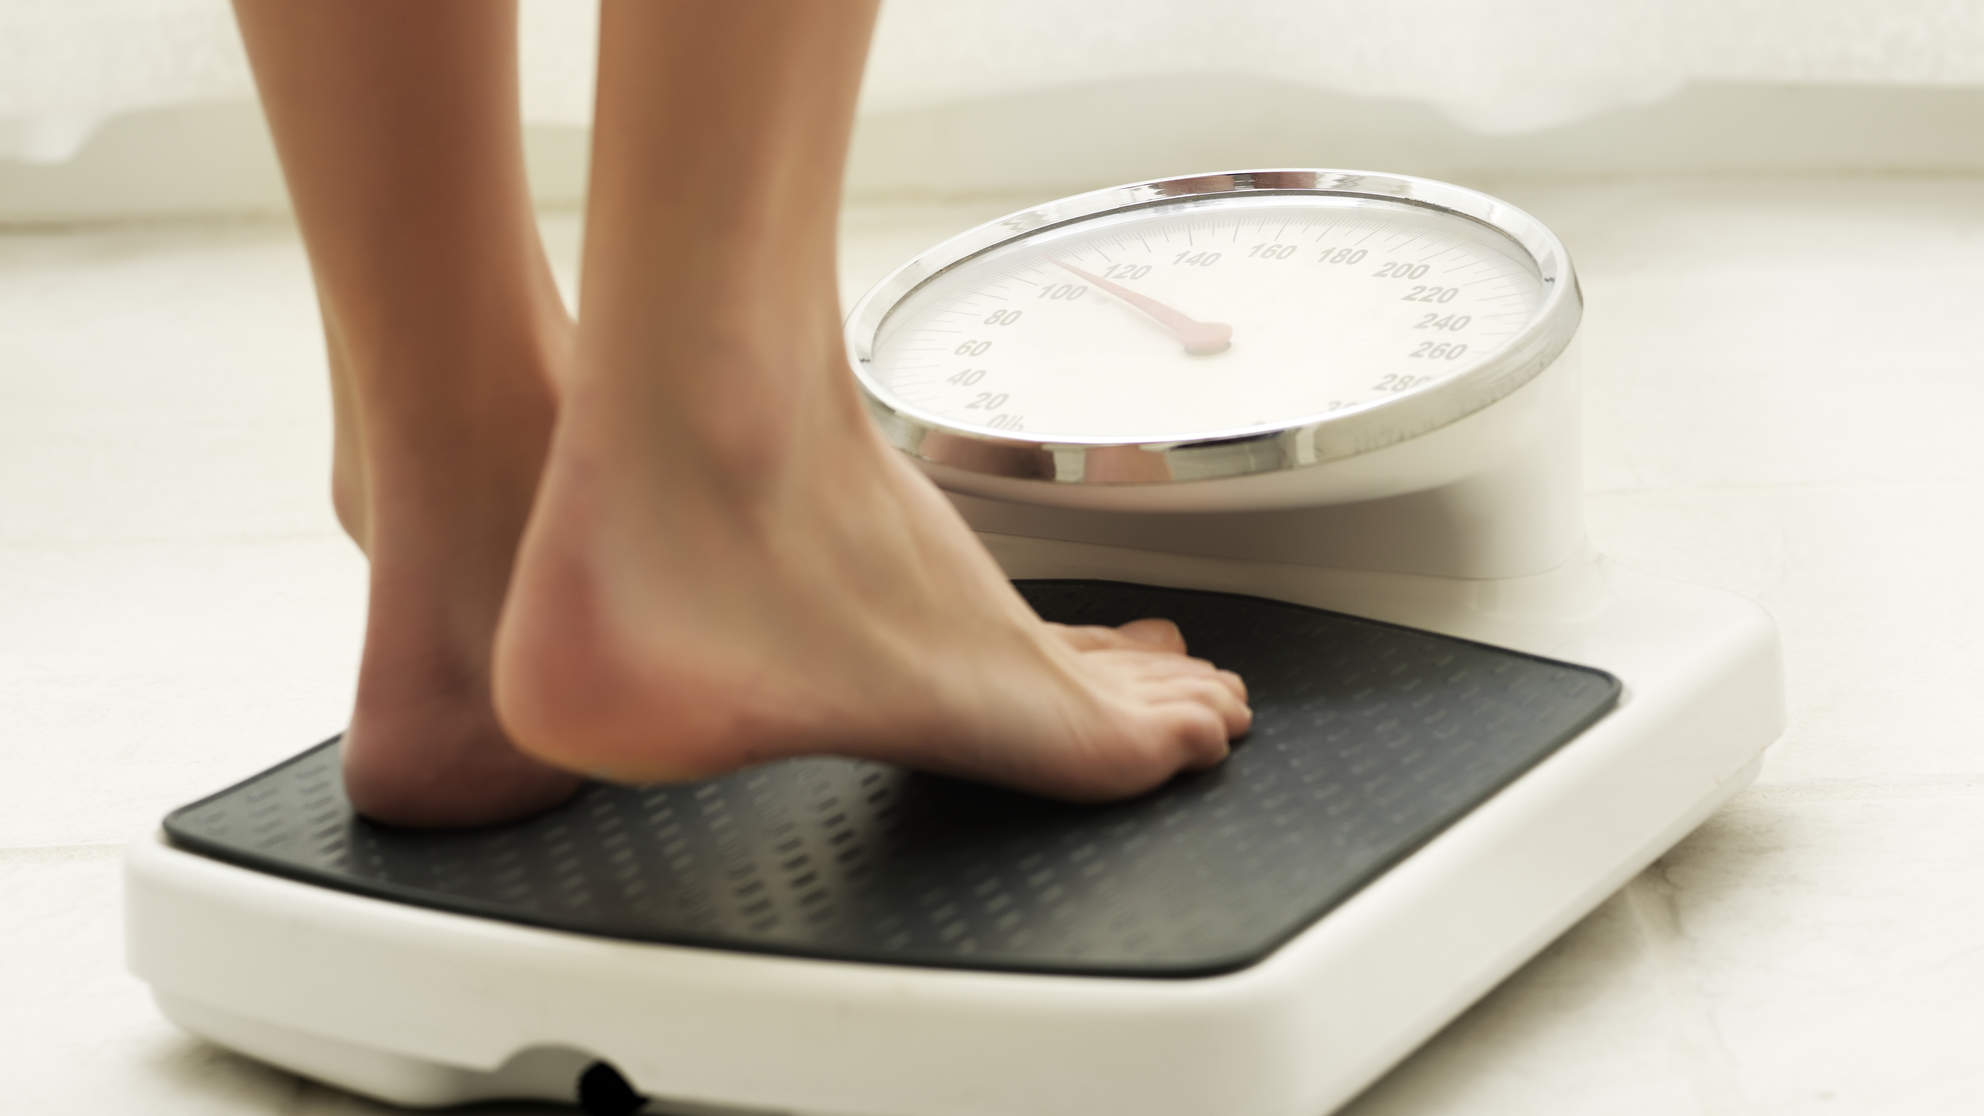 8 Conditions That Could Explain Your Sudden Weight Gain